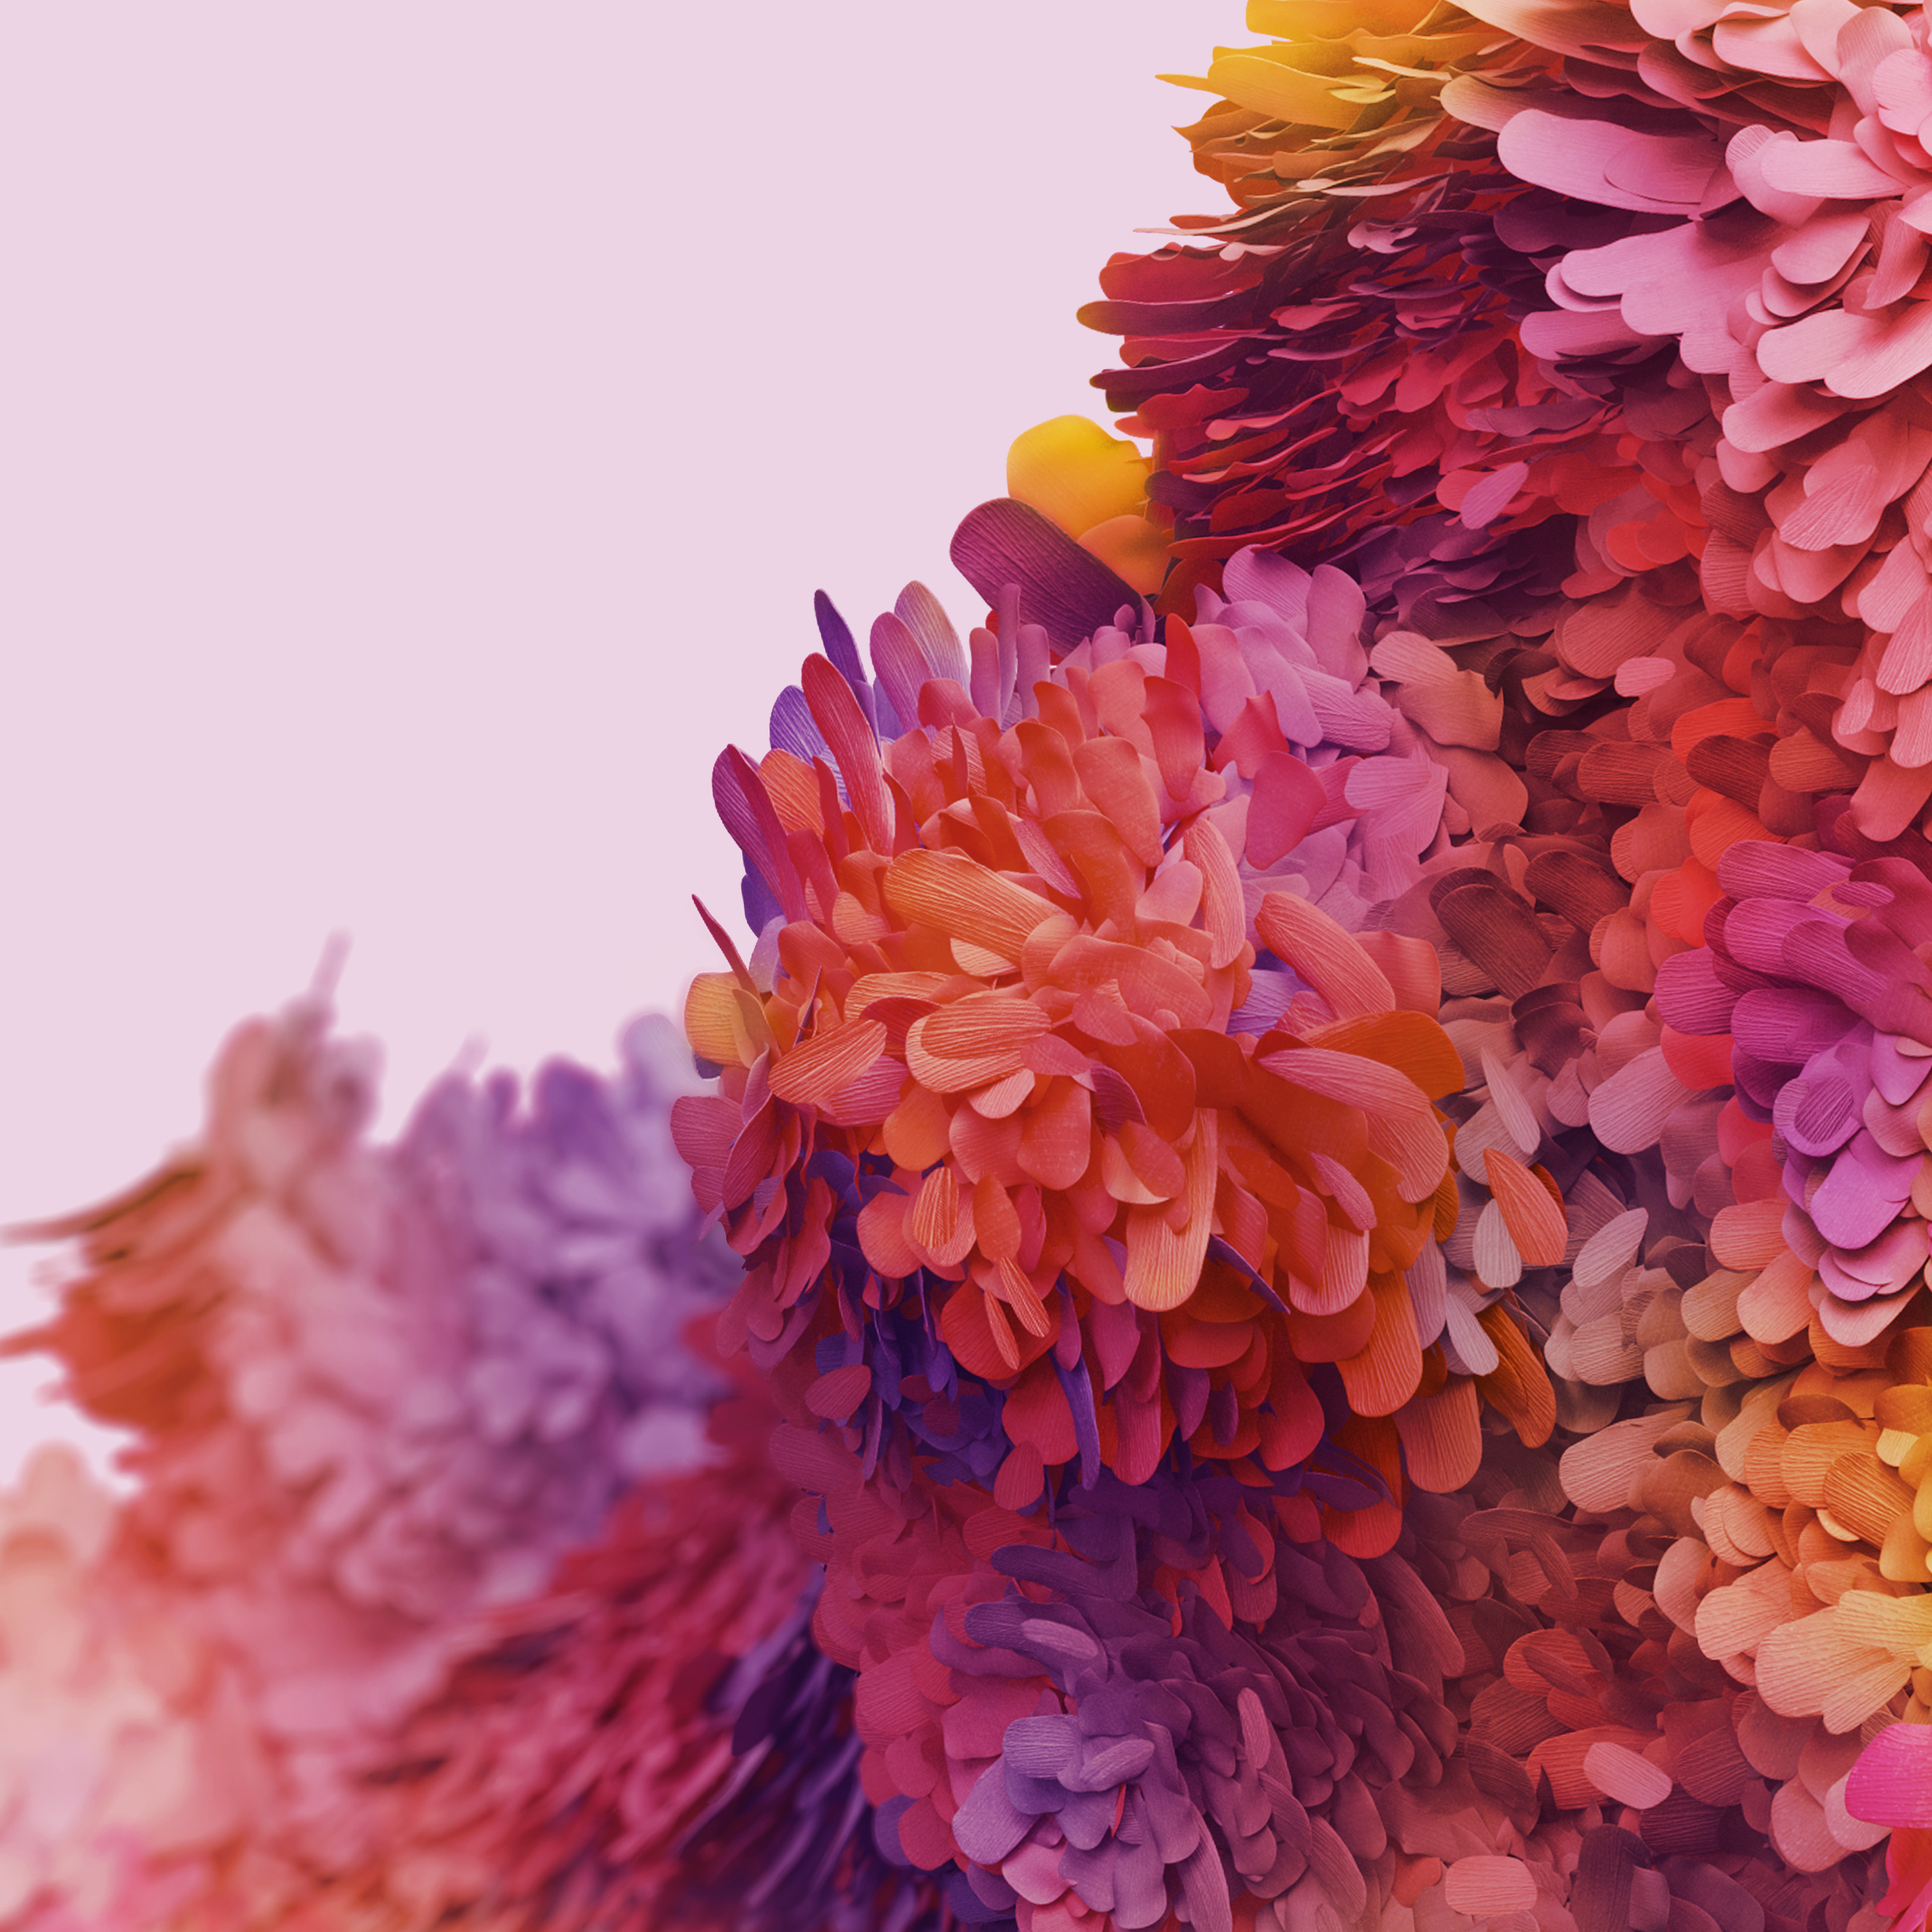 Here Are The Unreleased Galaxy S20 Fe S Wallpapers